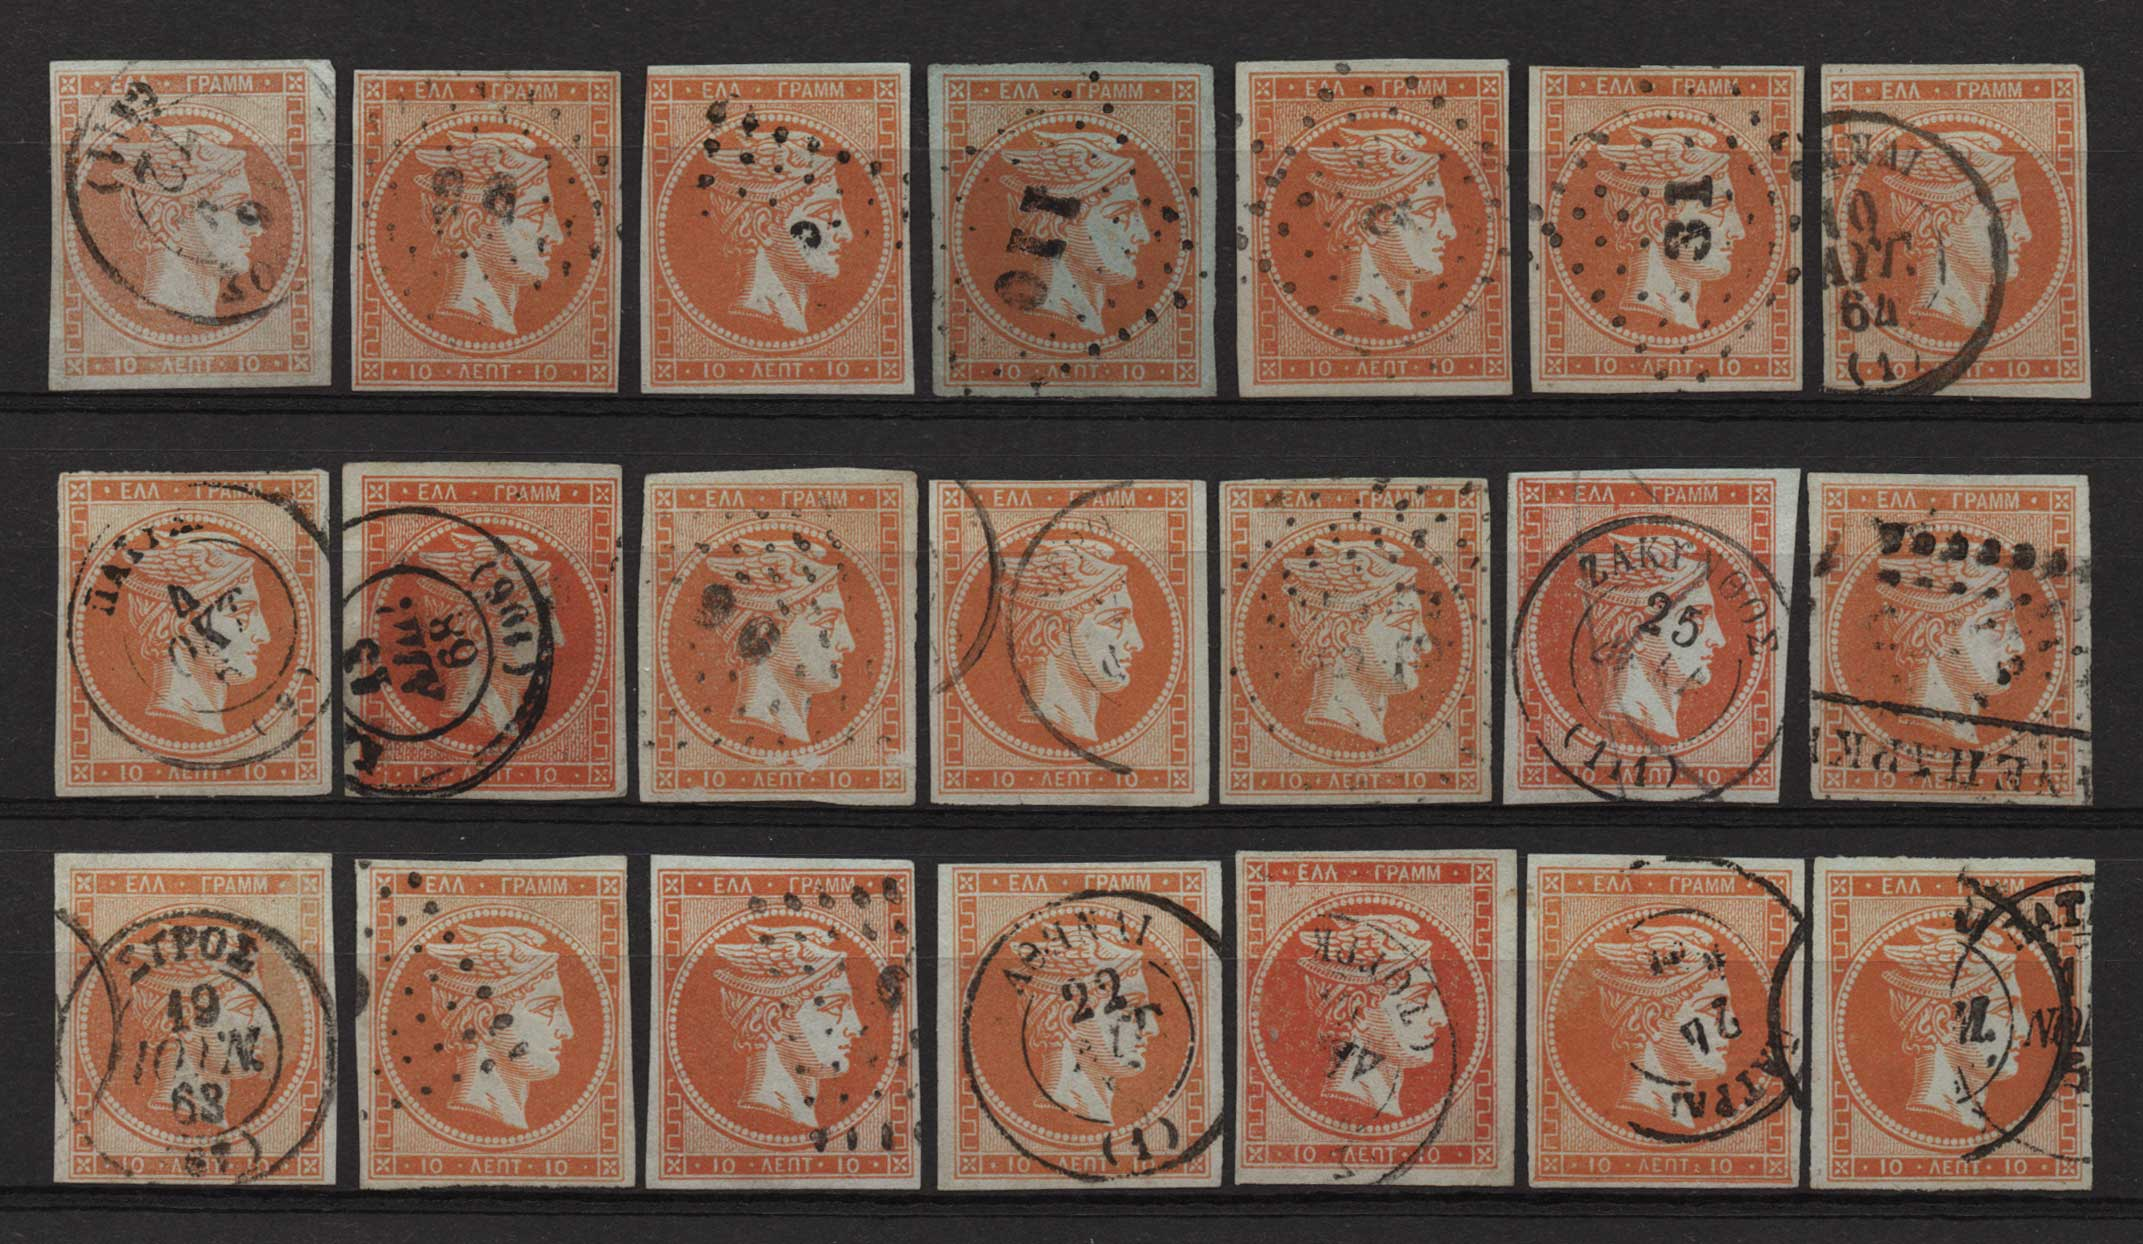 Lot 24 - -  LARGE HERMES HEAD large hermes head -  Athens Auctions Public Auction 74 General Stamp Sale